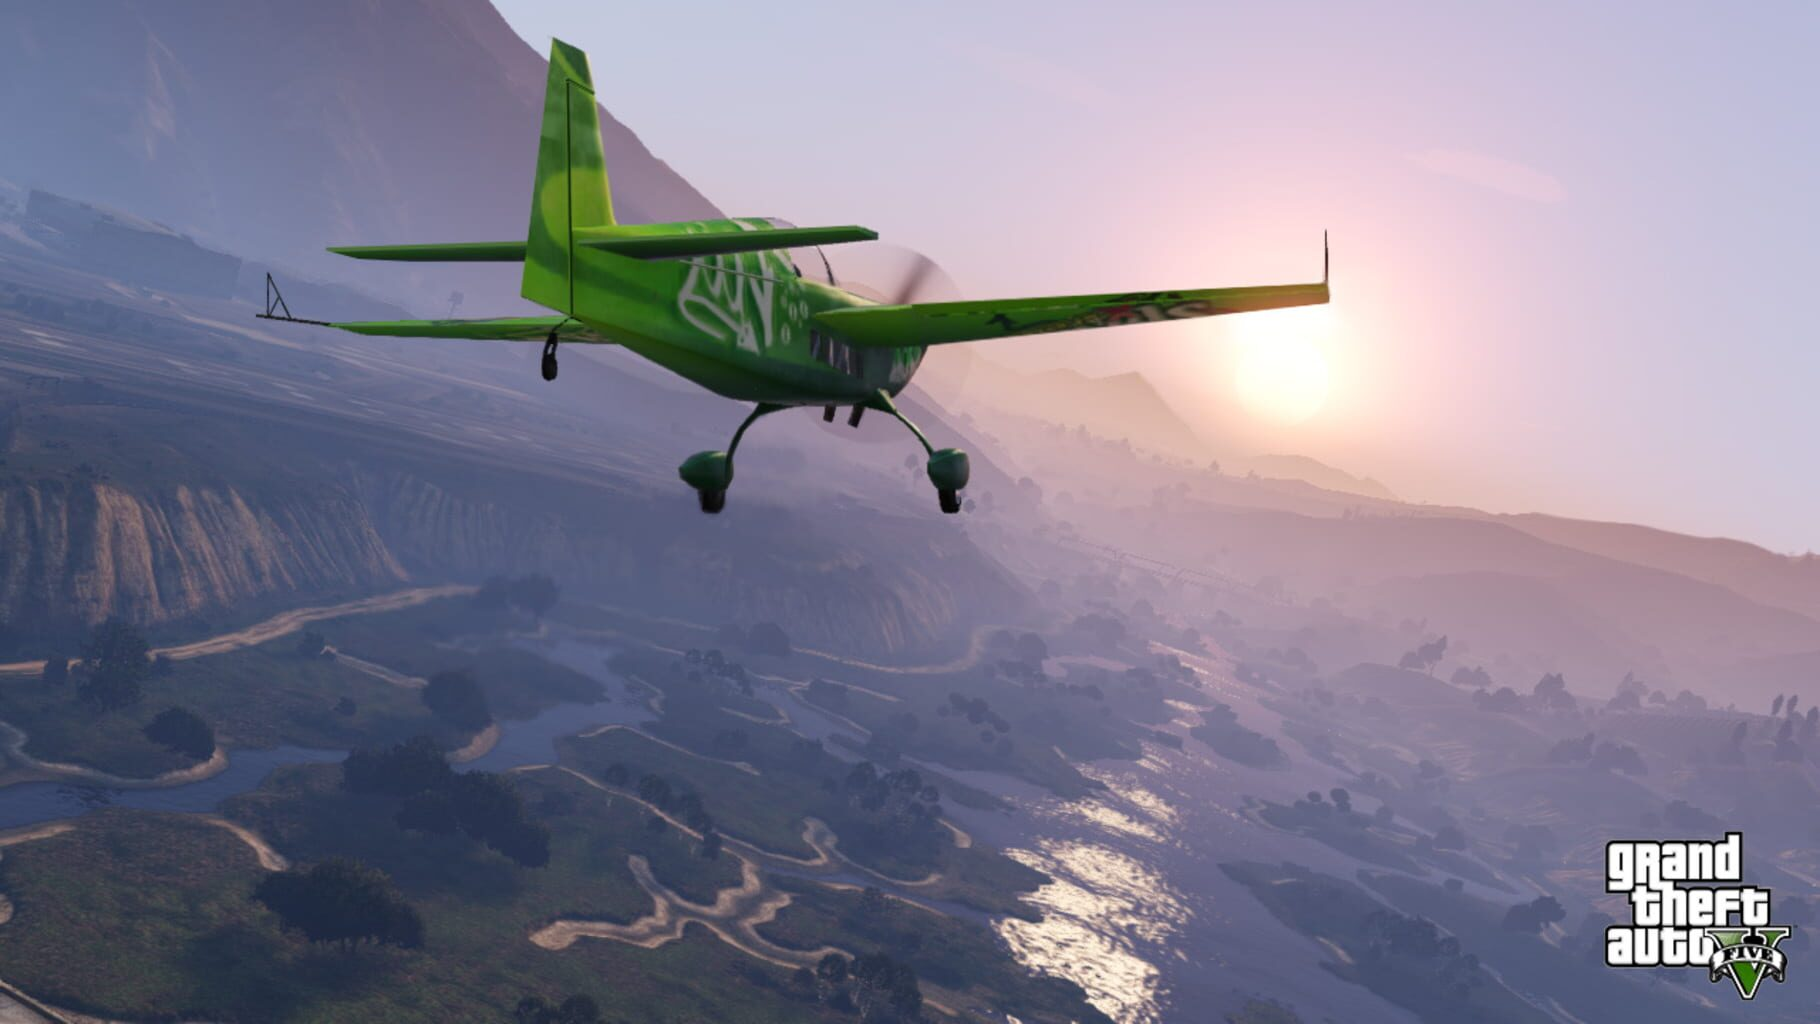 Gameplay Screenshot from Grand Theft Auto V